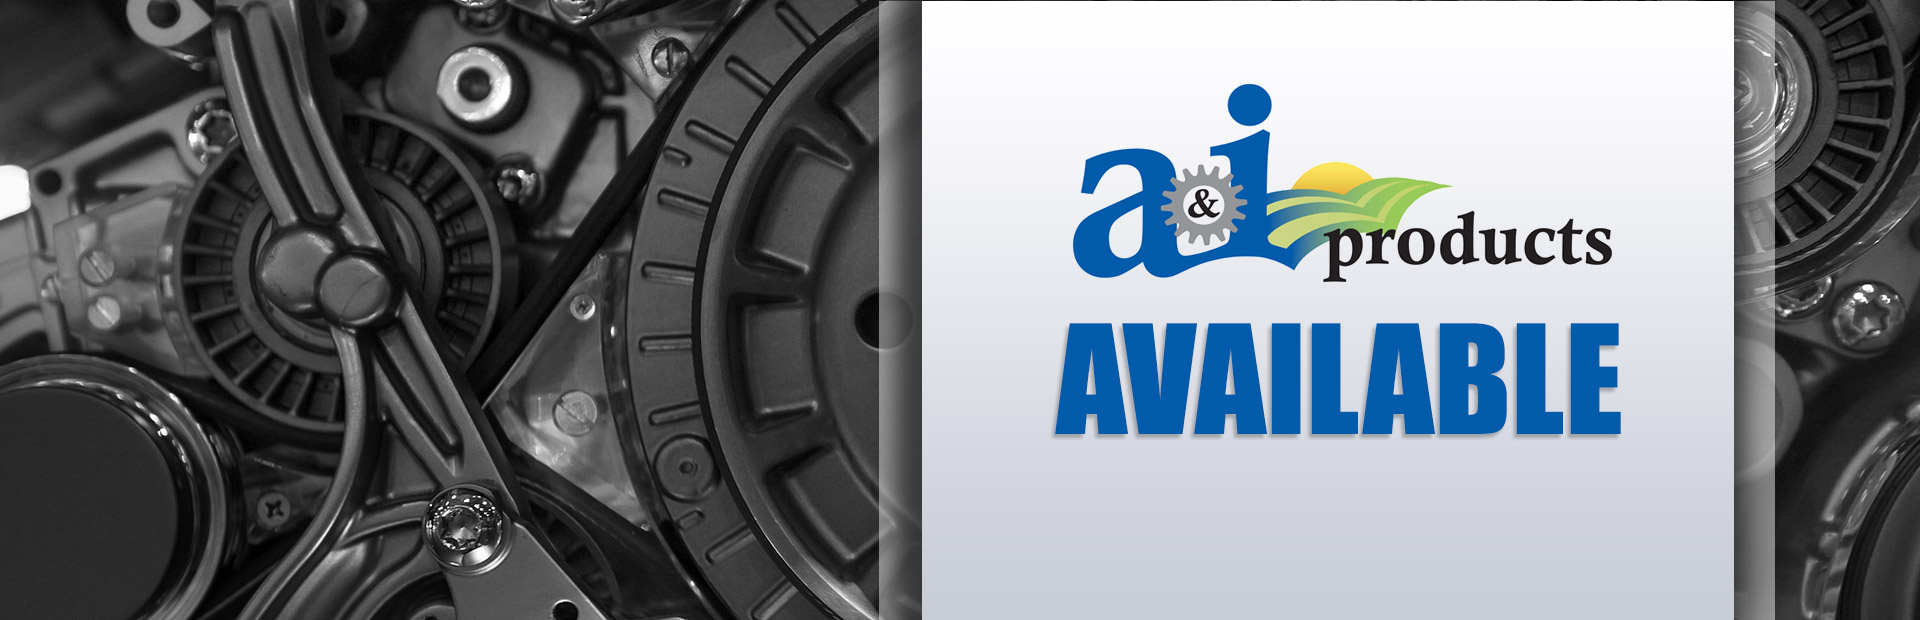 A&I Products Available: Click here for details.